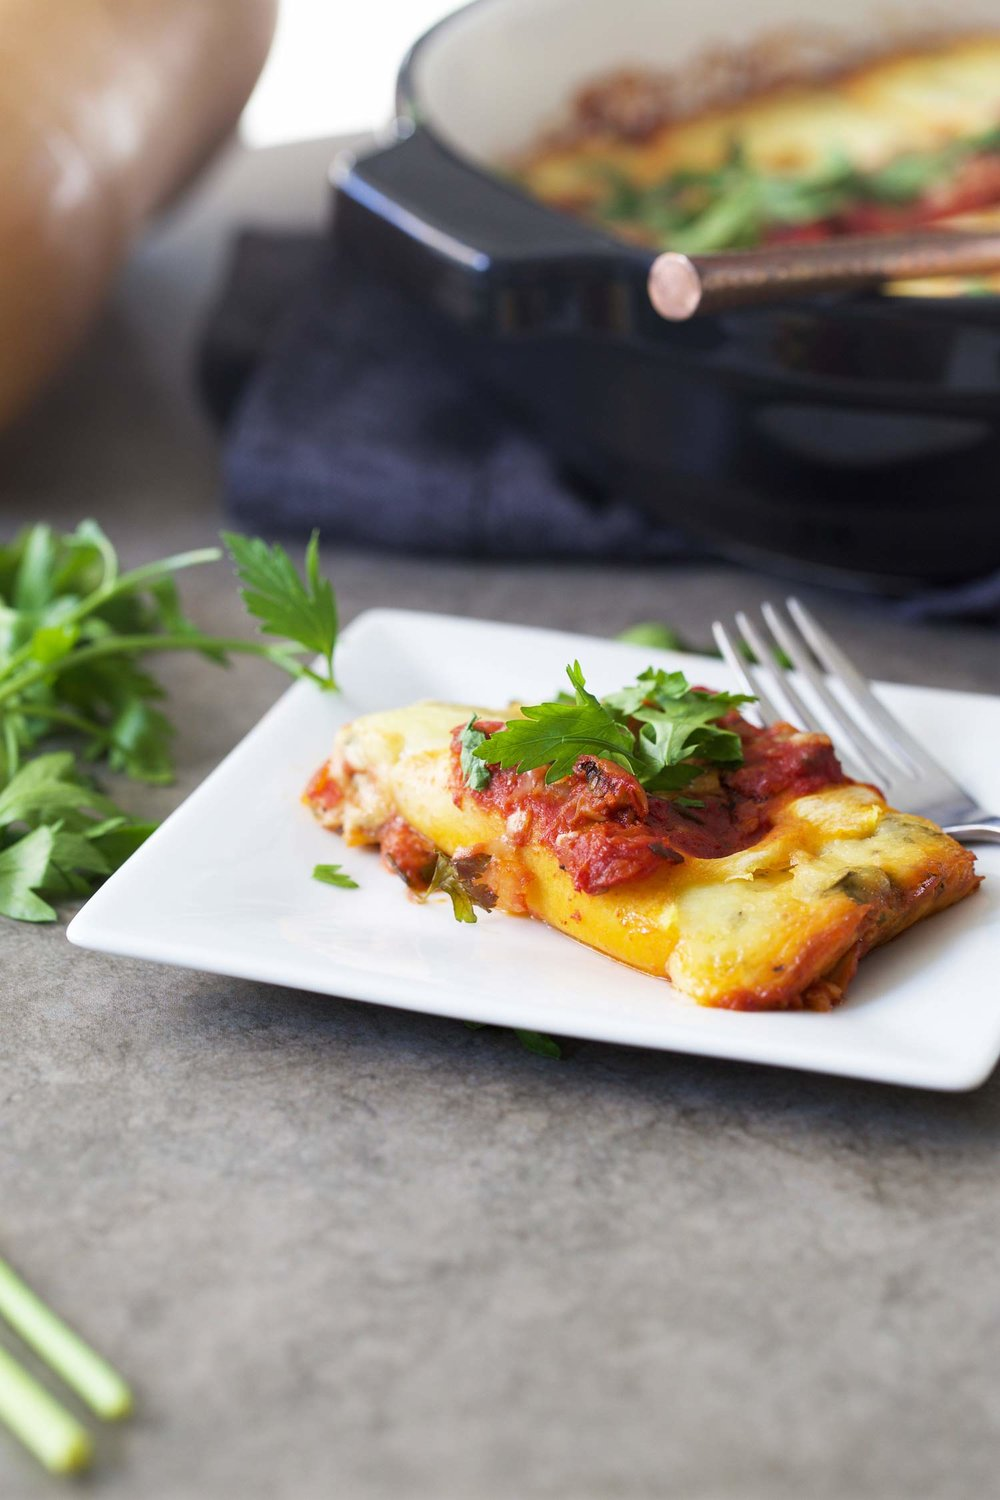 butternut squash manicotti on a plate